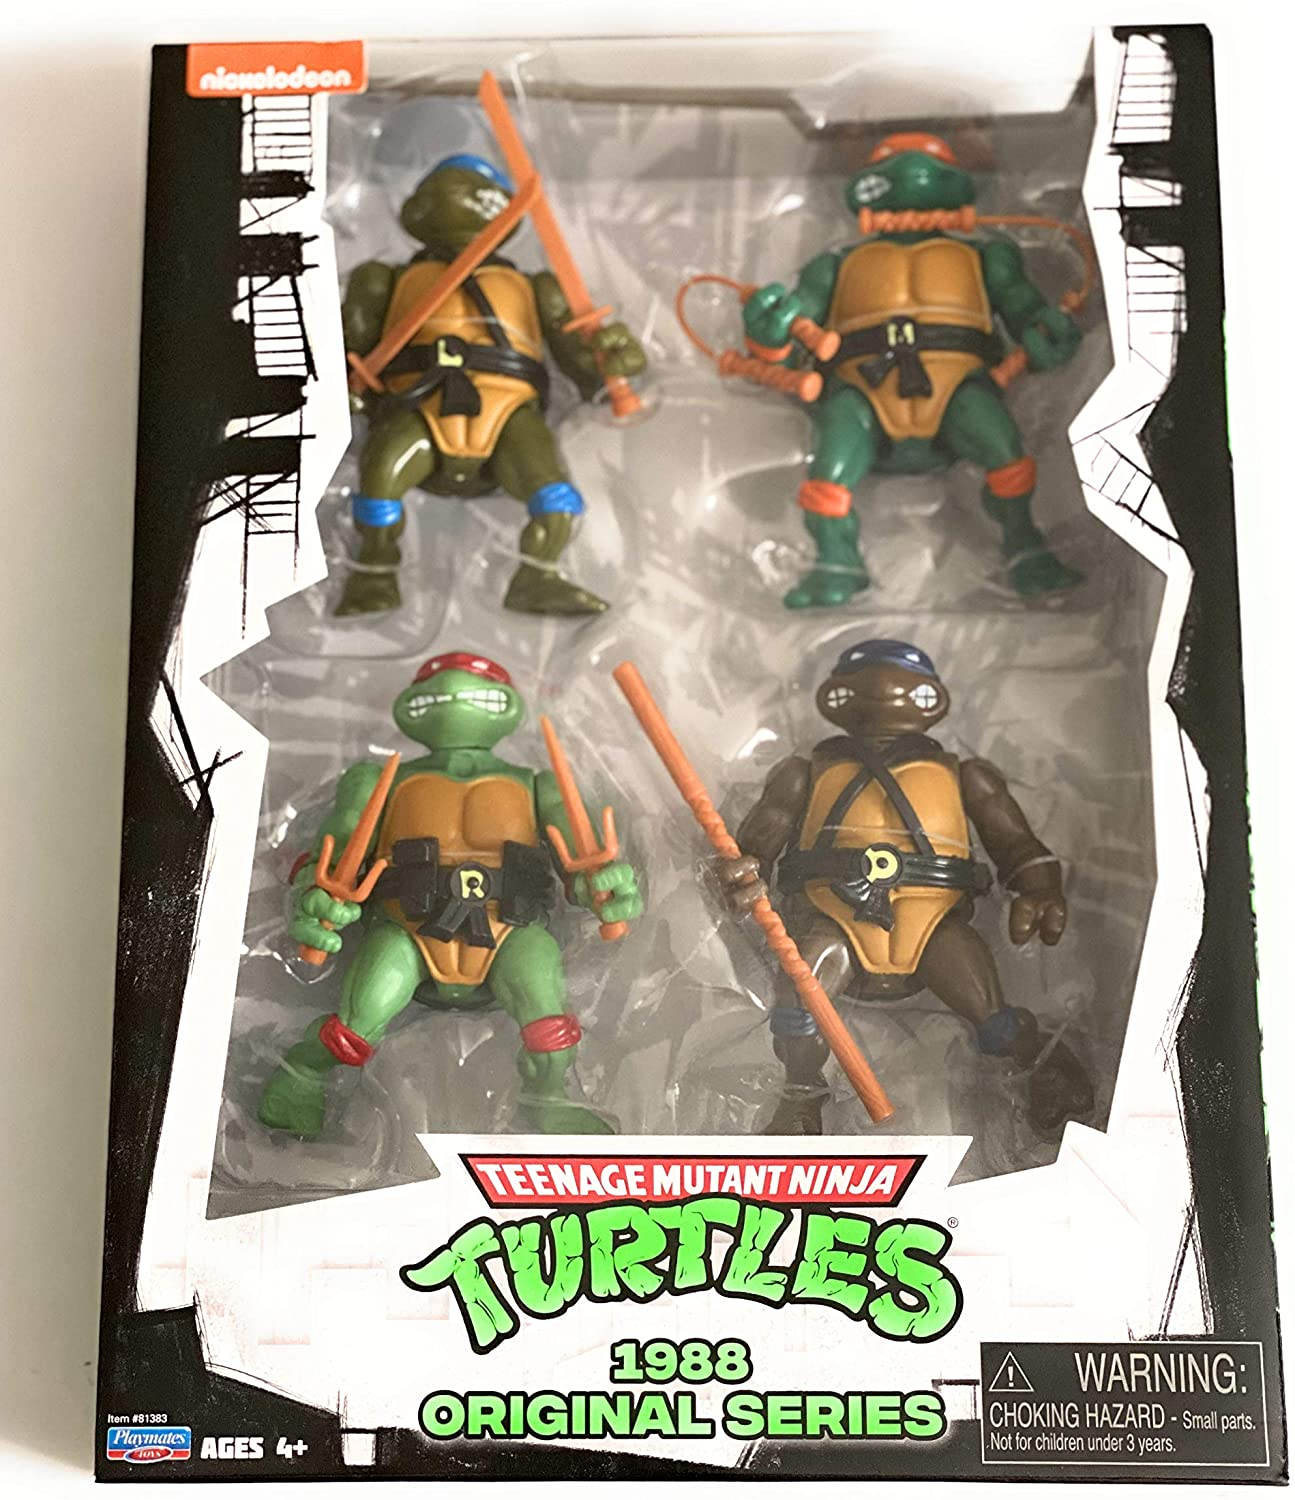 Teenage Mutant Ninja Turtles Classic 1988 Original Series 4 Pack